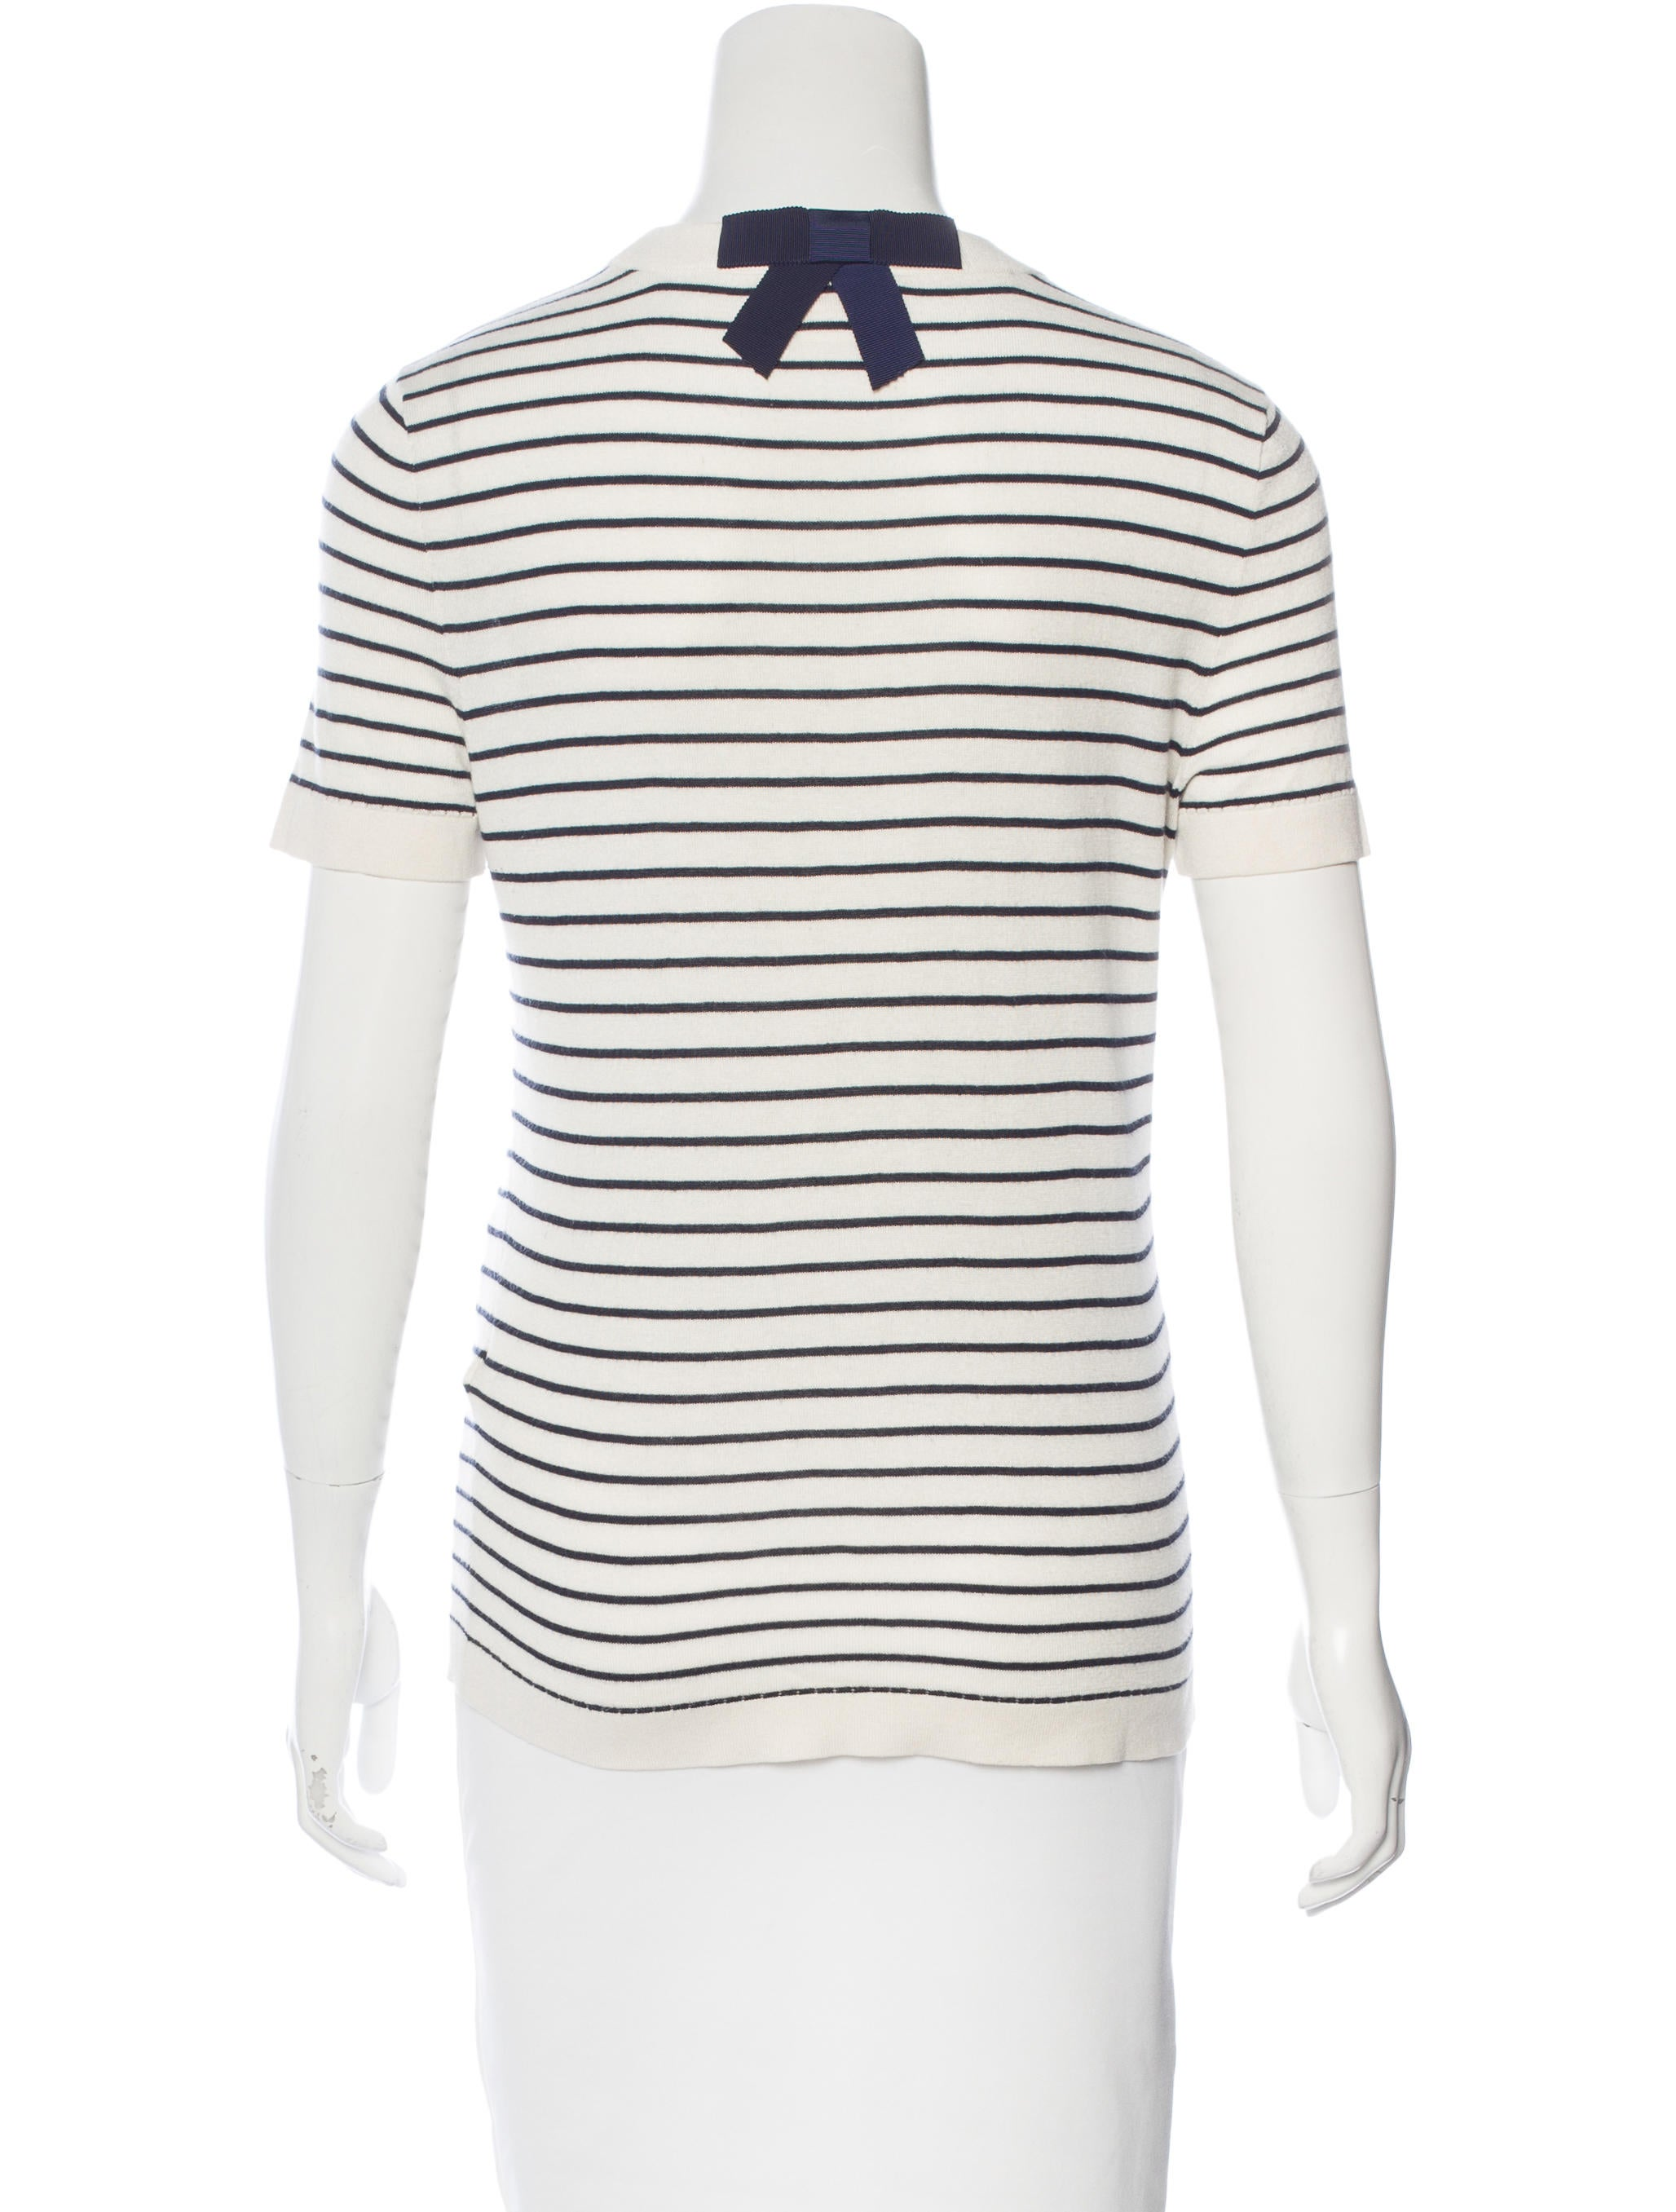 Kate spade new york silk striped top clothing wka56584 for Best dress shirts nyc